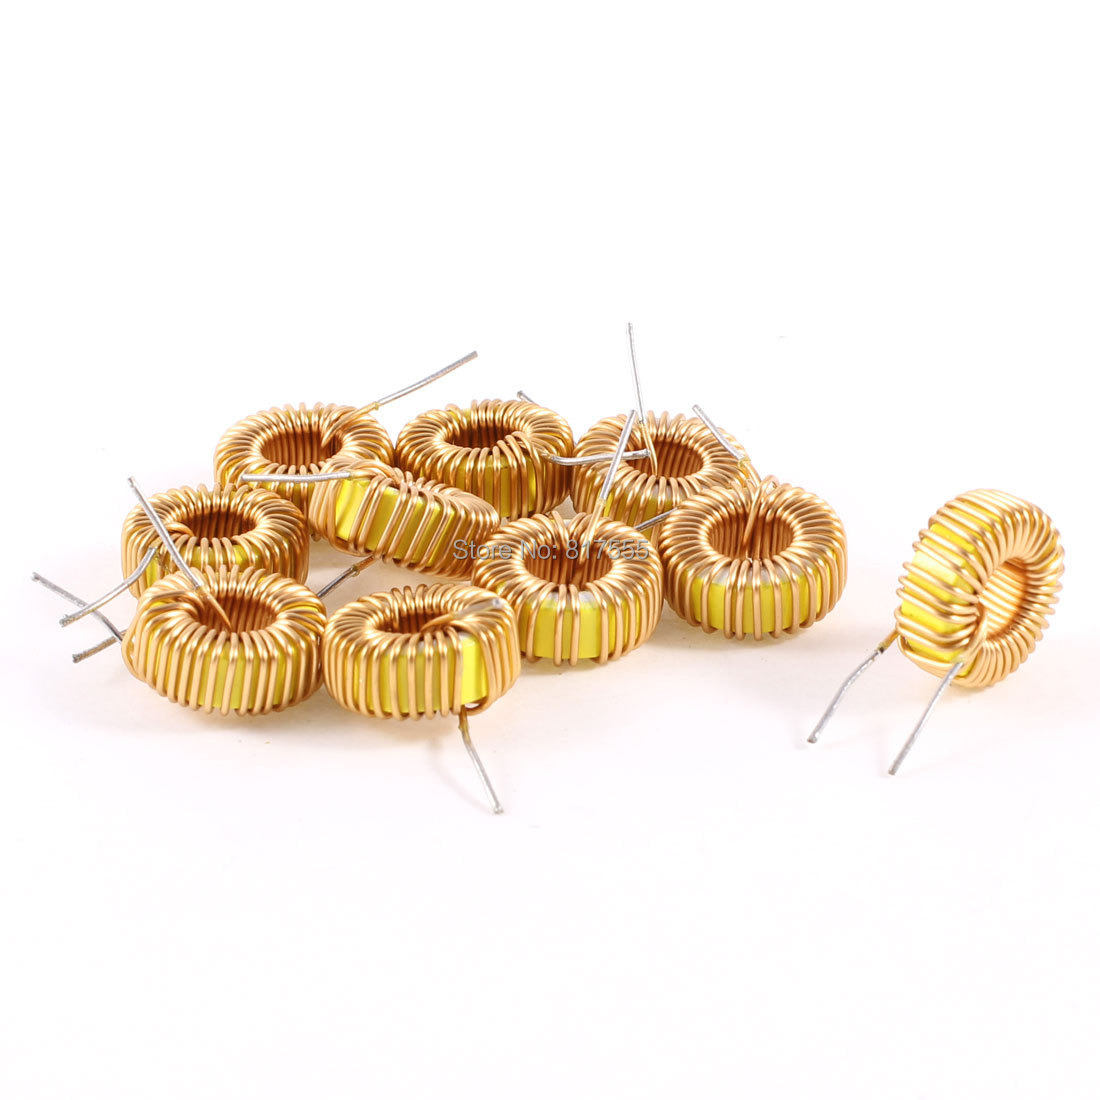 10 Pcs/lot Toroid Core Inductor Wire Wind Wound 47uH 38mOhm 3A Coil Discount 50(China (Mainland))